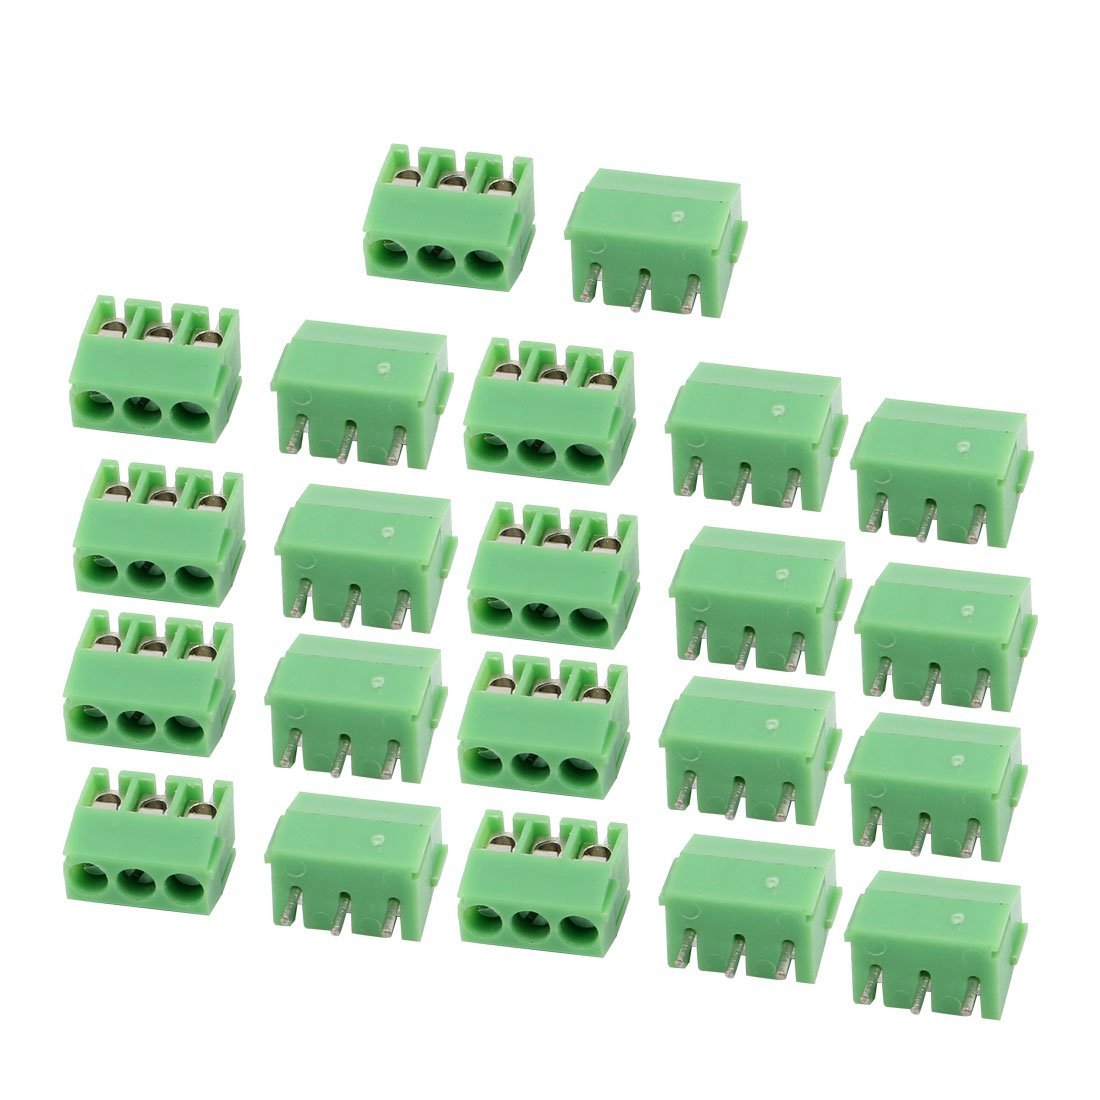 uxcell 22Pcs AC 300V 10A 3.5mm Pitch 3P Terminal Block PCB Mount Wire Connection